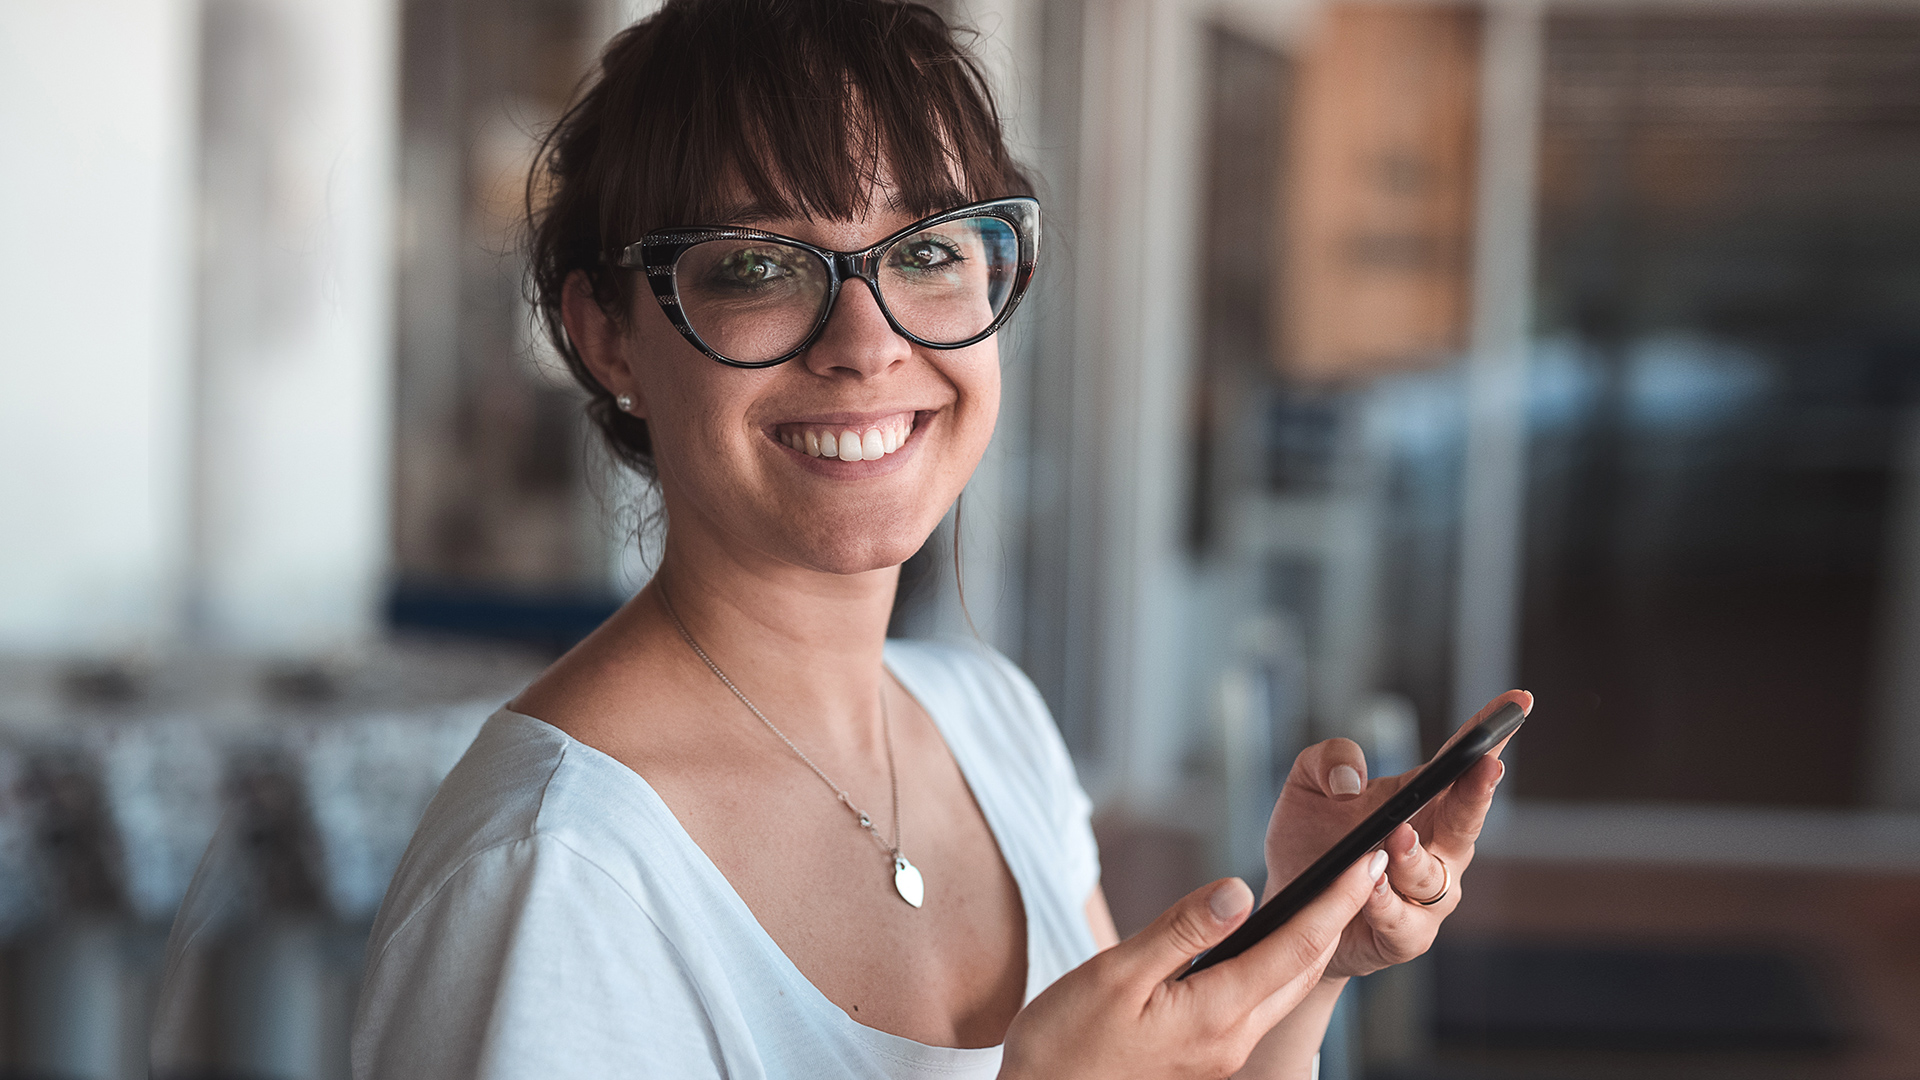 Woman with glasses smiling after using super calculator